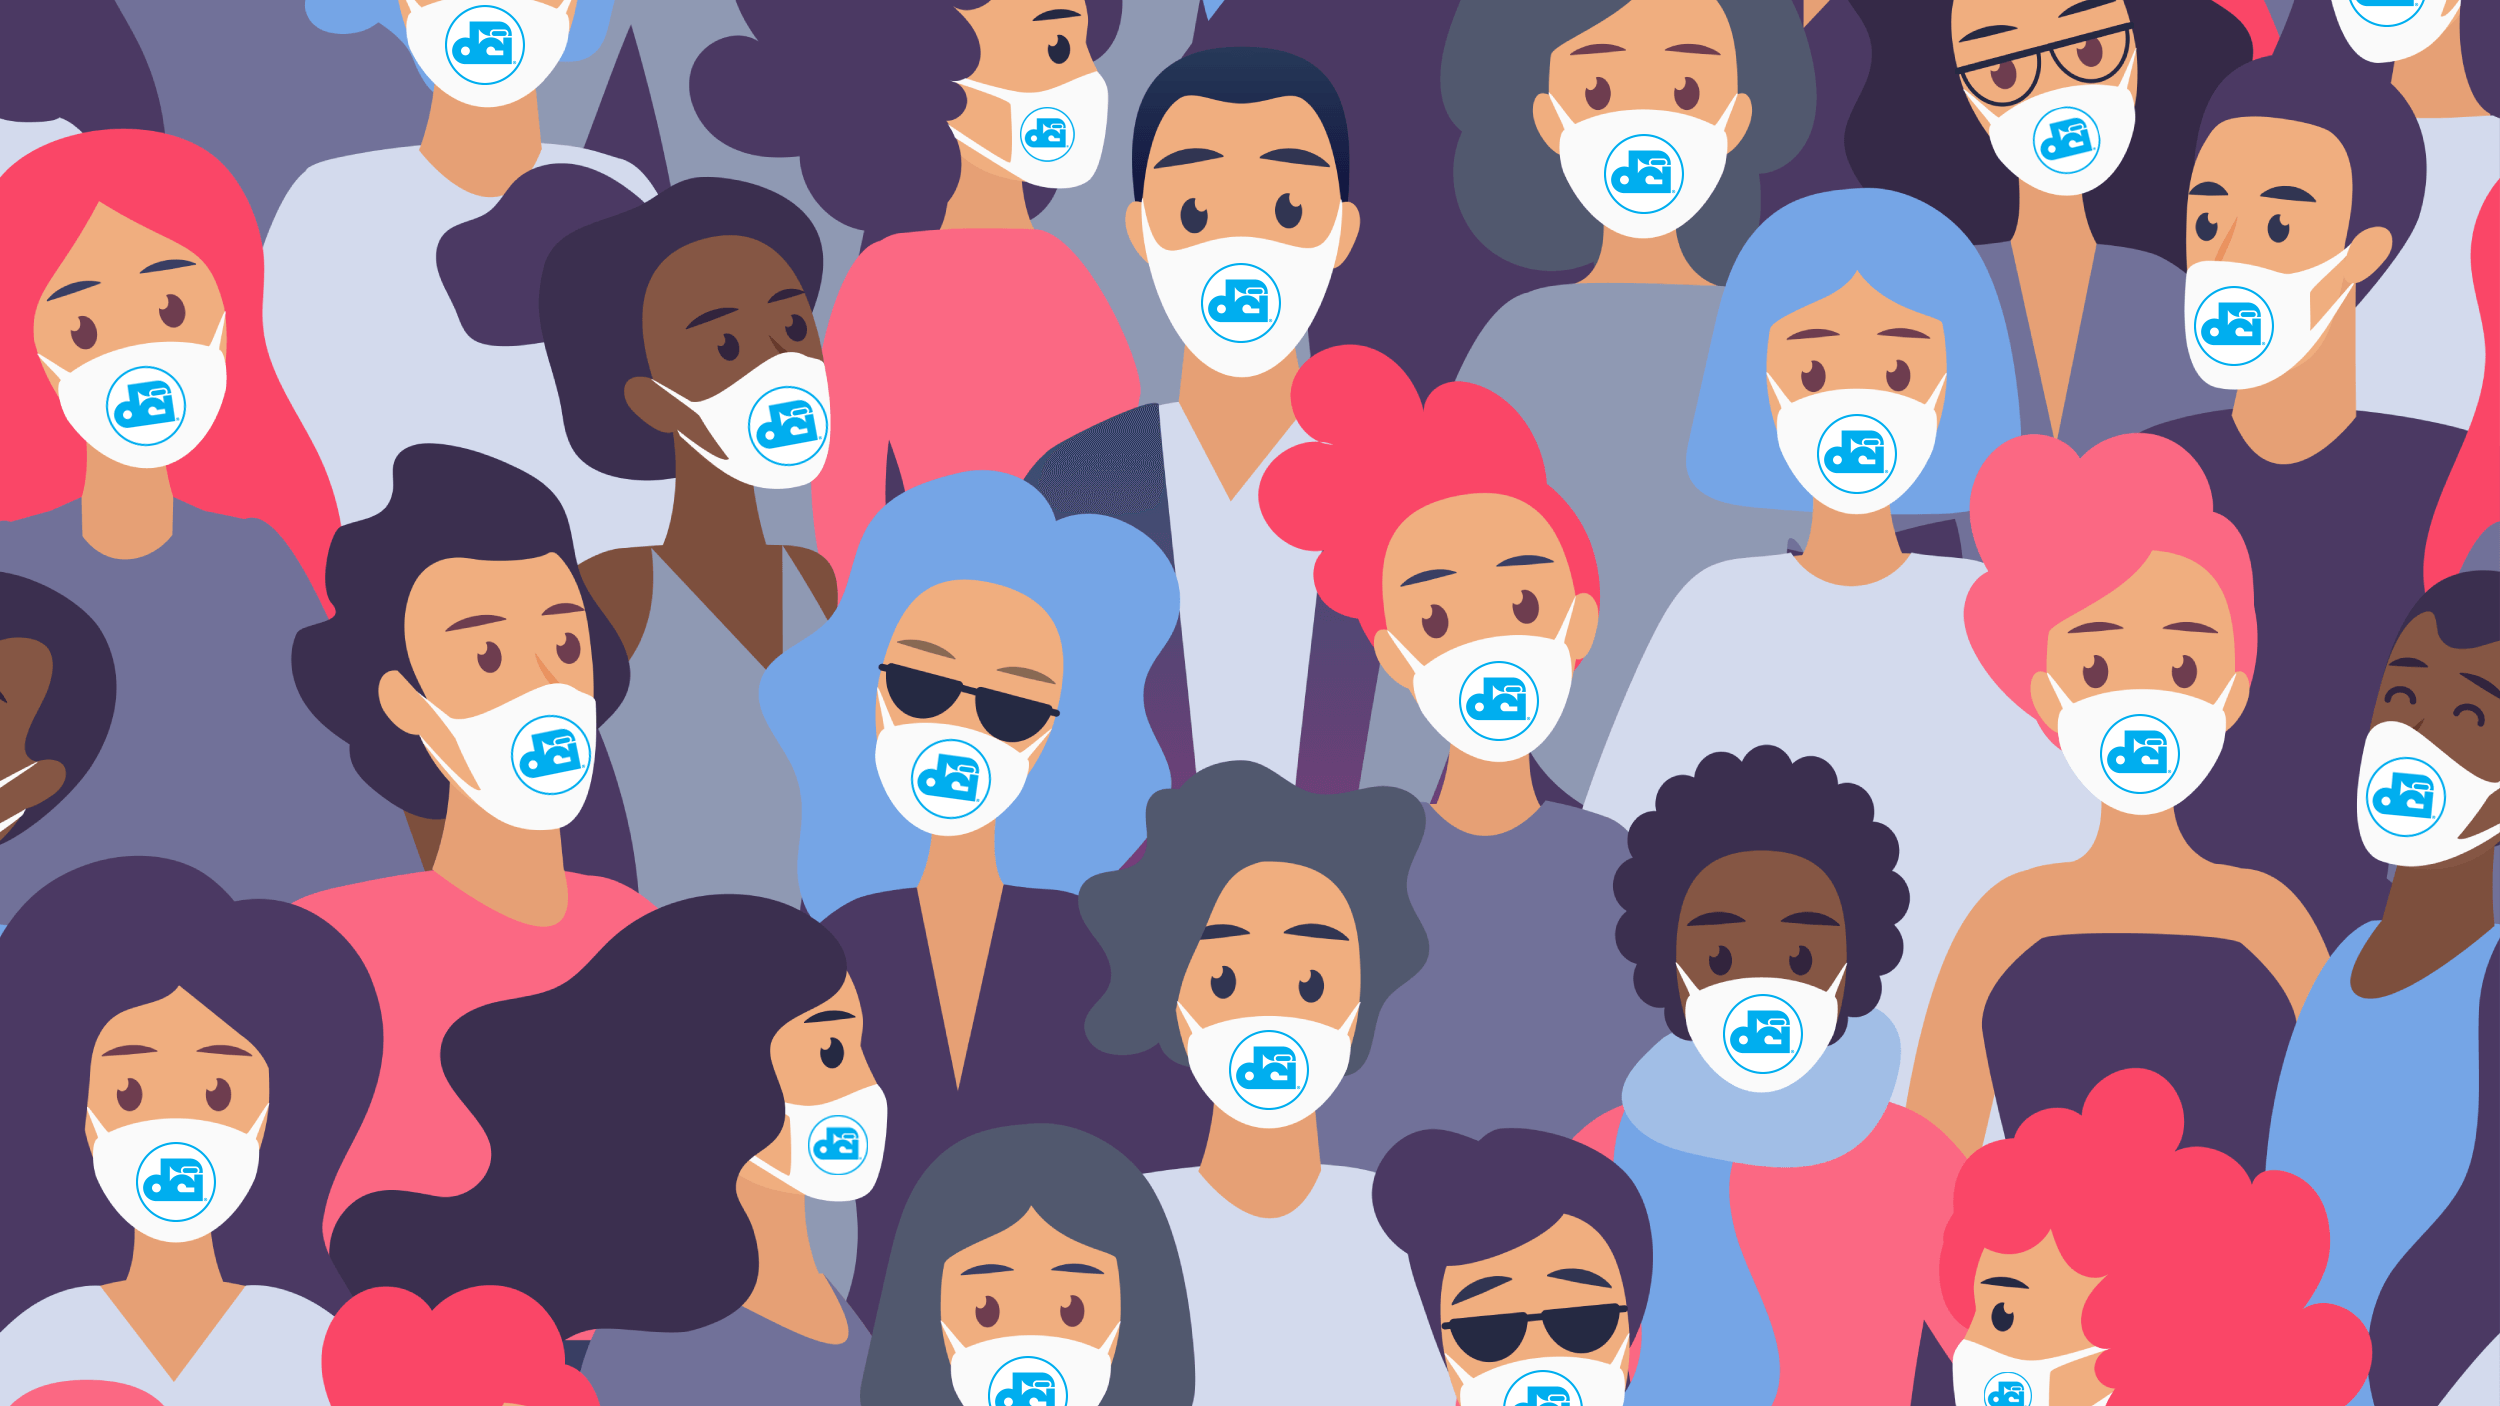 #MaskUp: Face coverings from some of your favorite corps